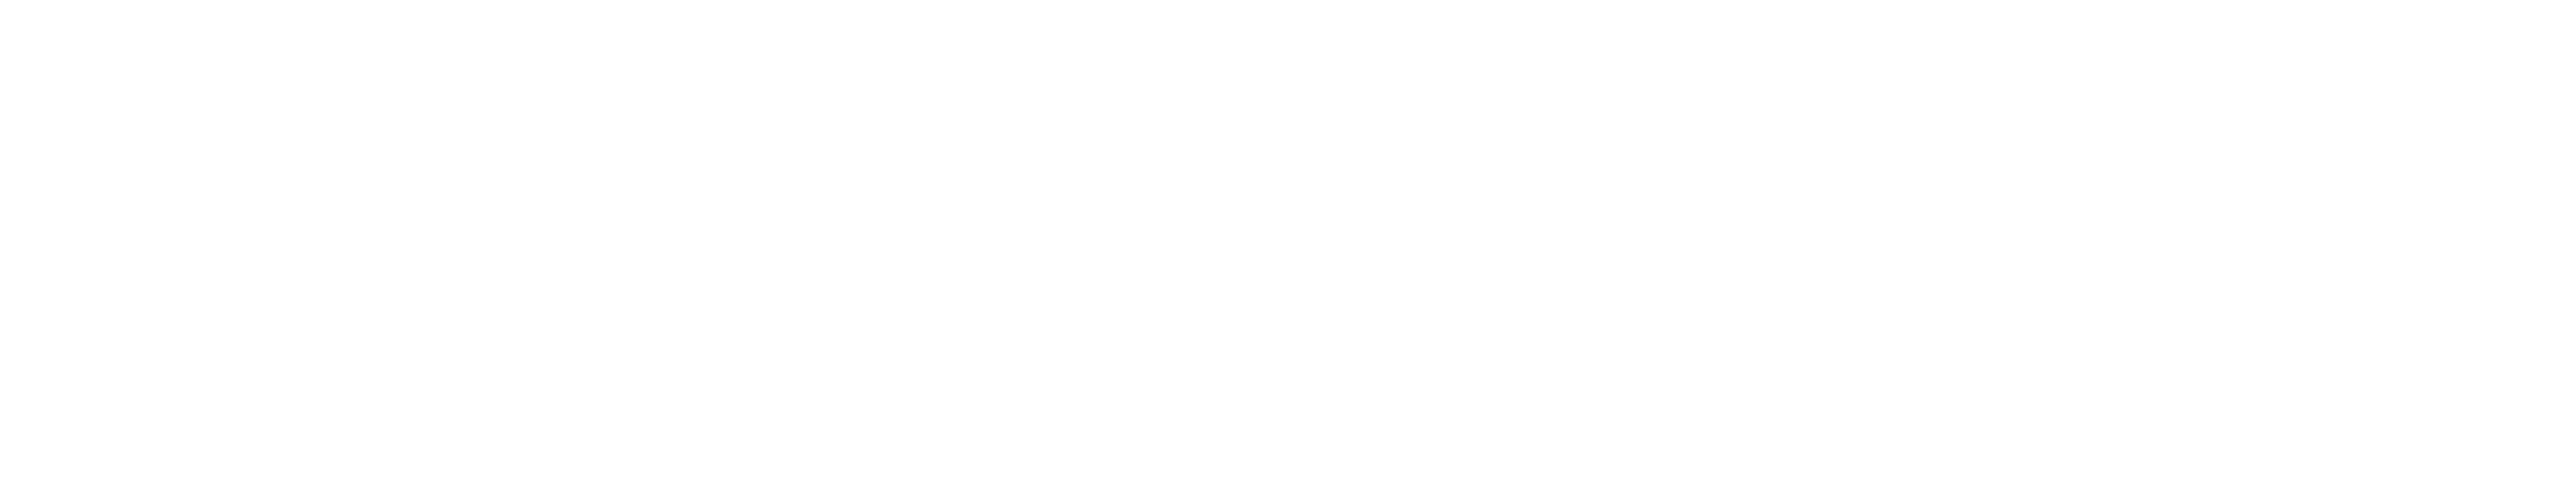 Event sponsors for Niagara Falls New Year's Eve